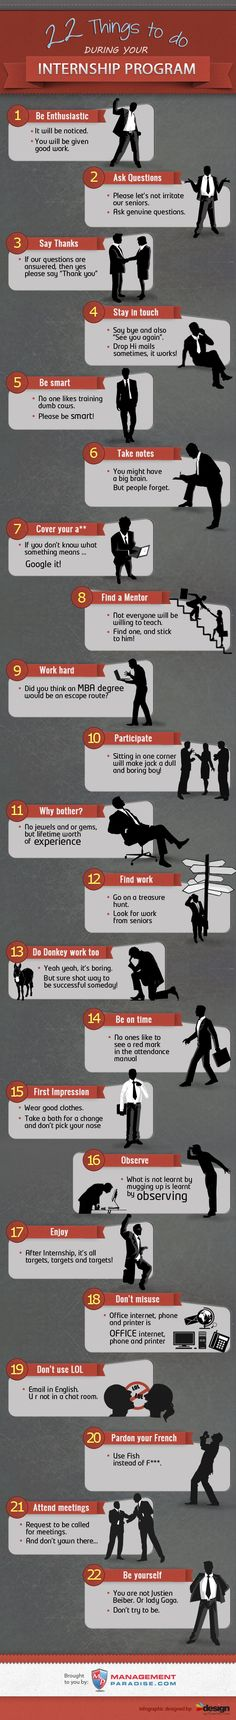 22 things to do during your internship program [infographic]